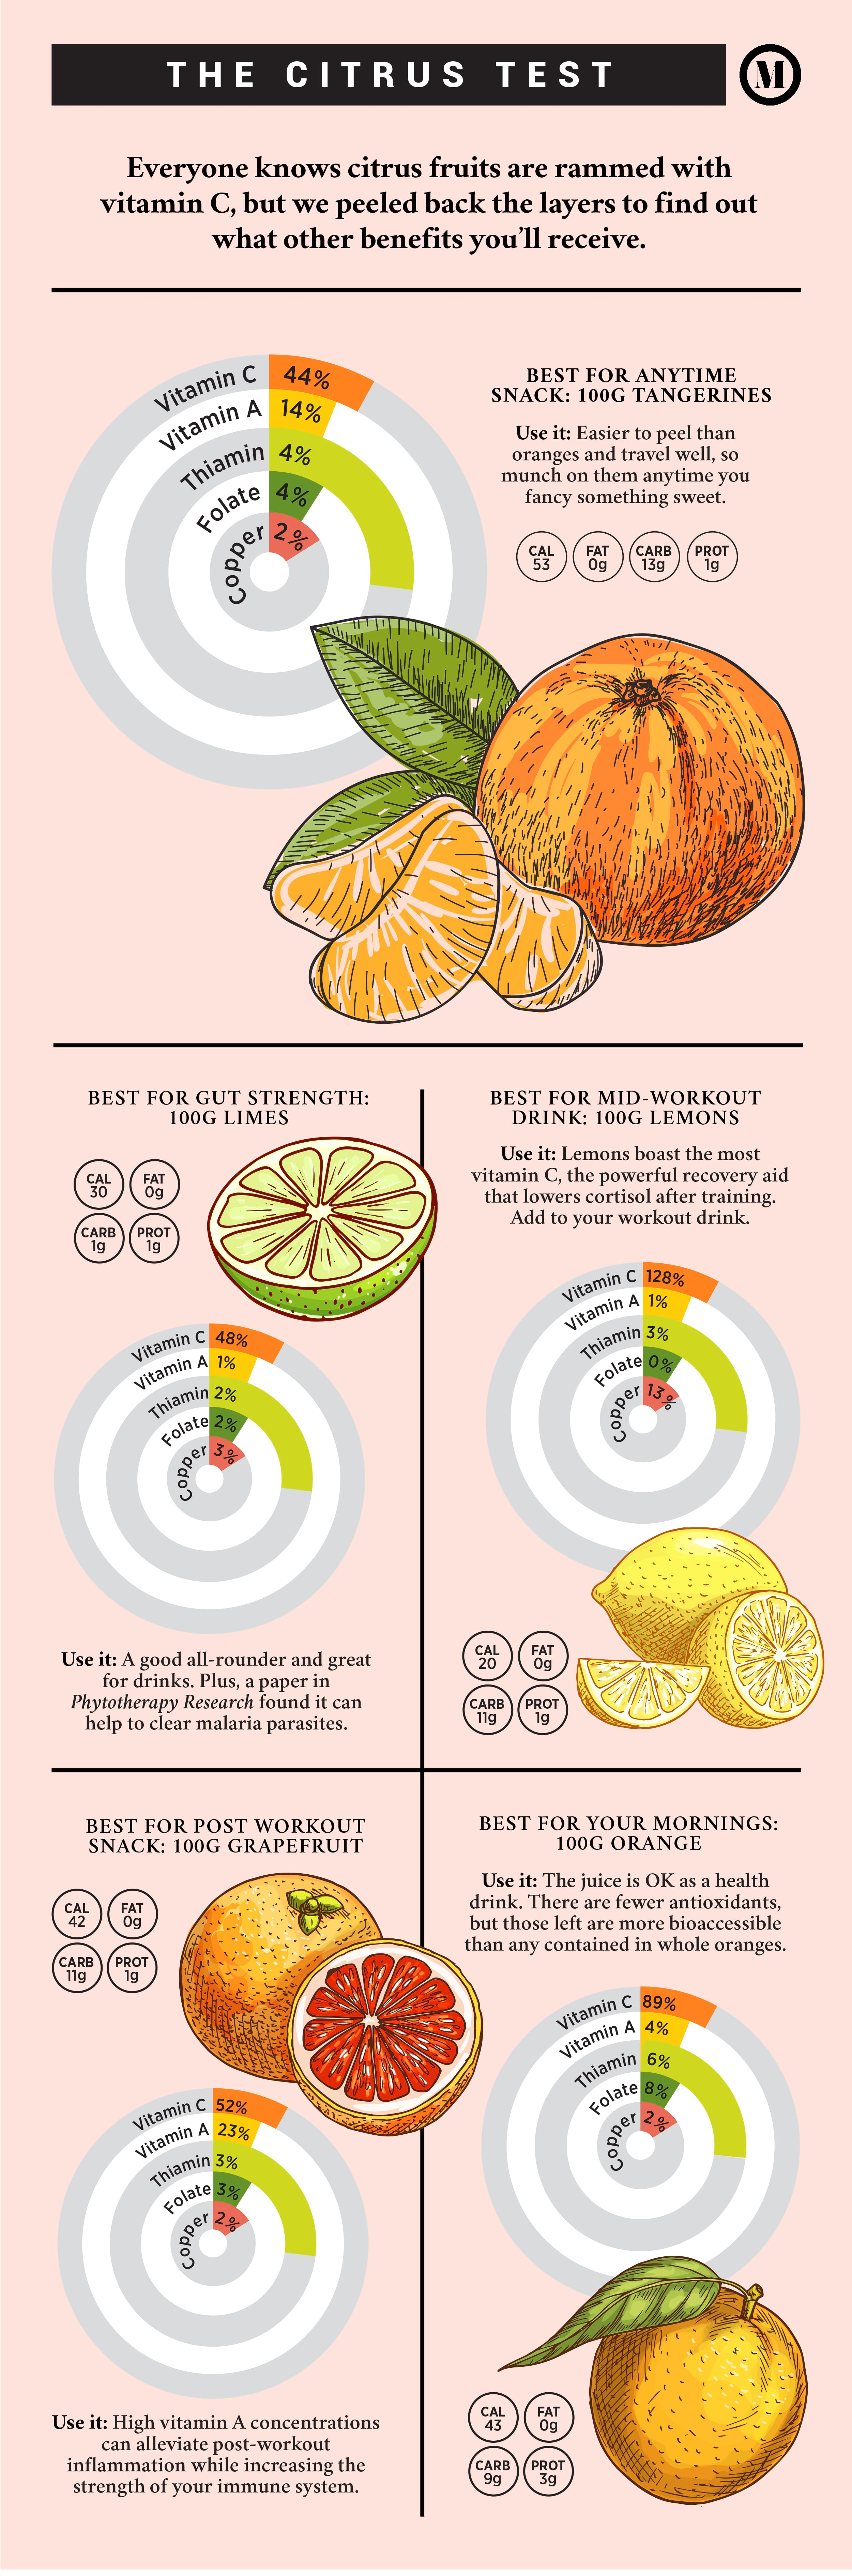 When And Why Should You Be Eating Citrus Fruits